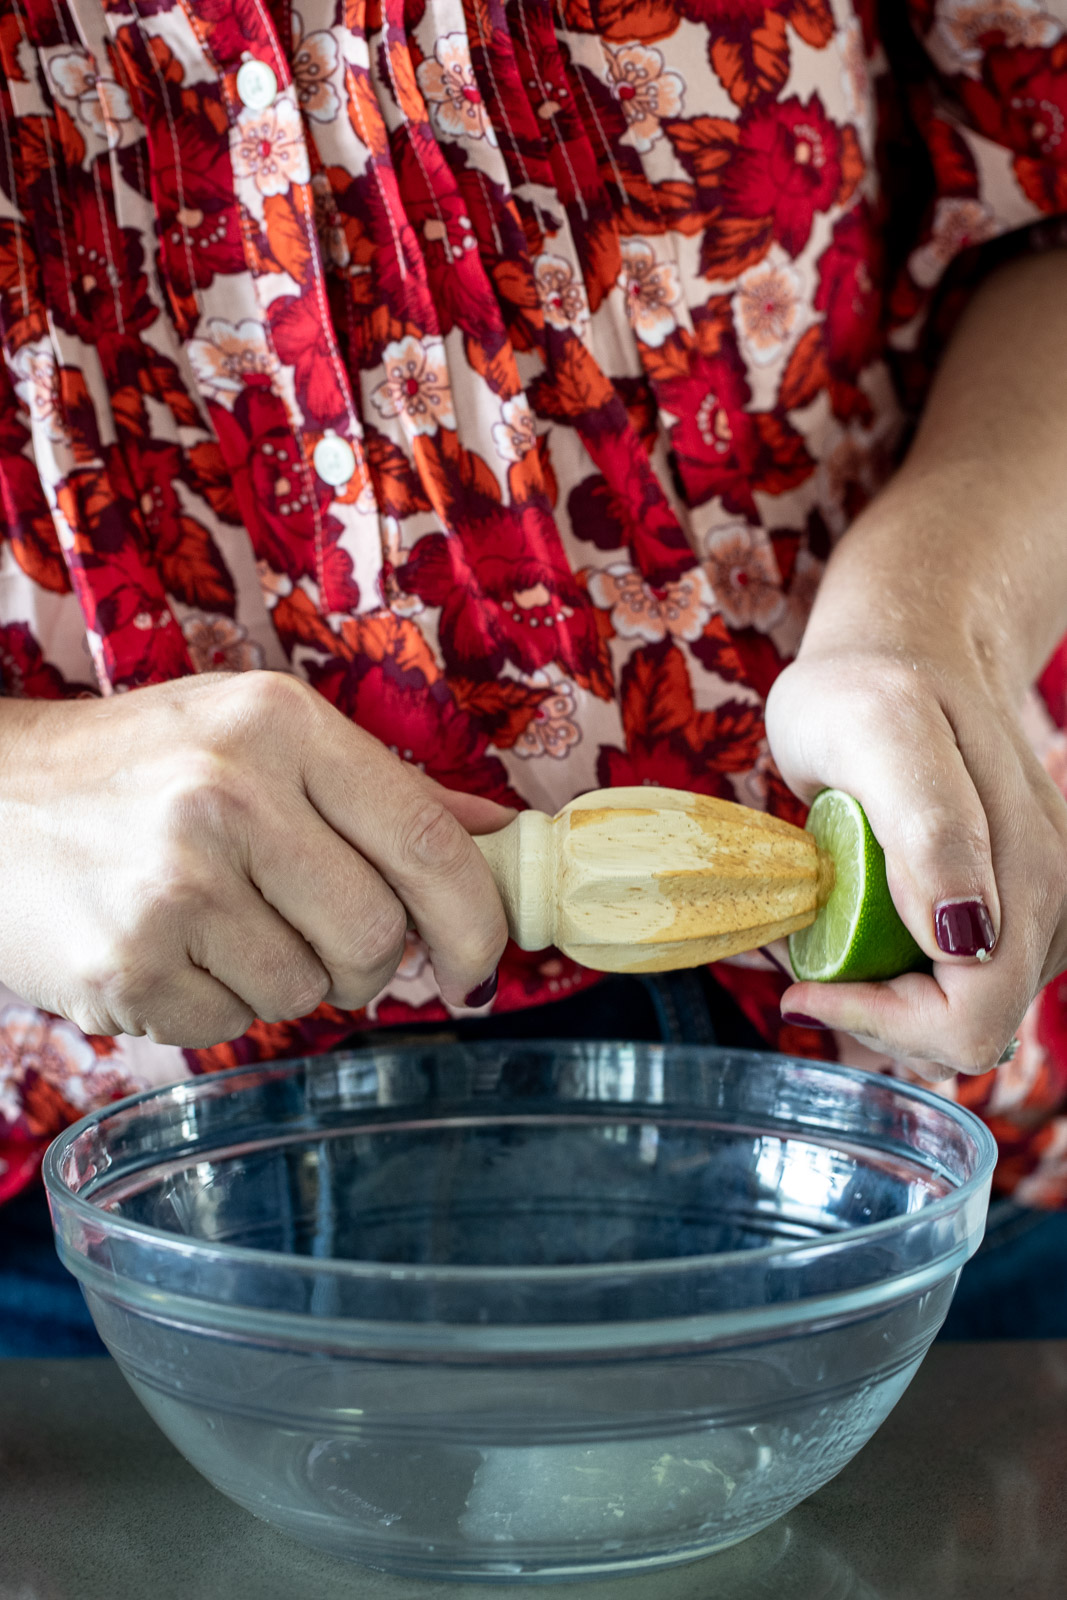 Woman juicing lime into a glass bowl.